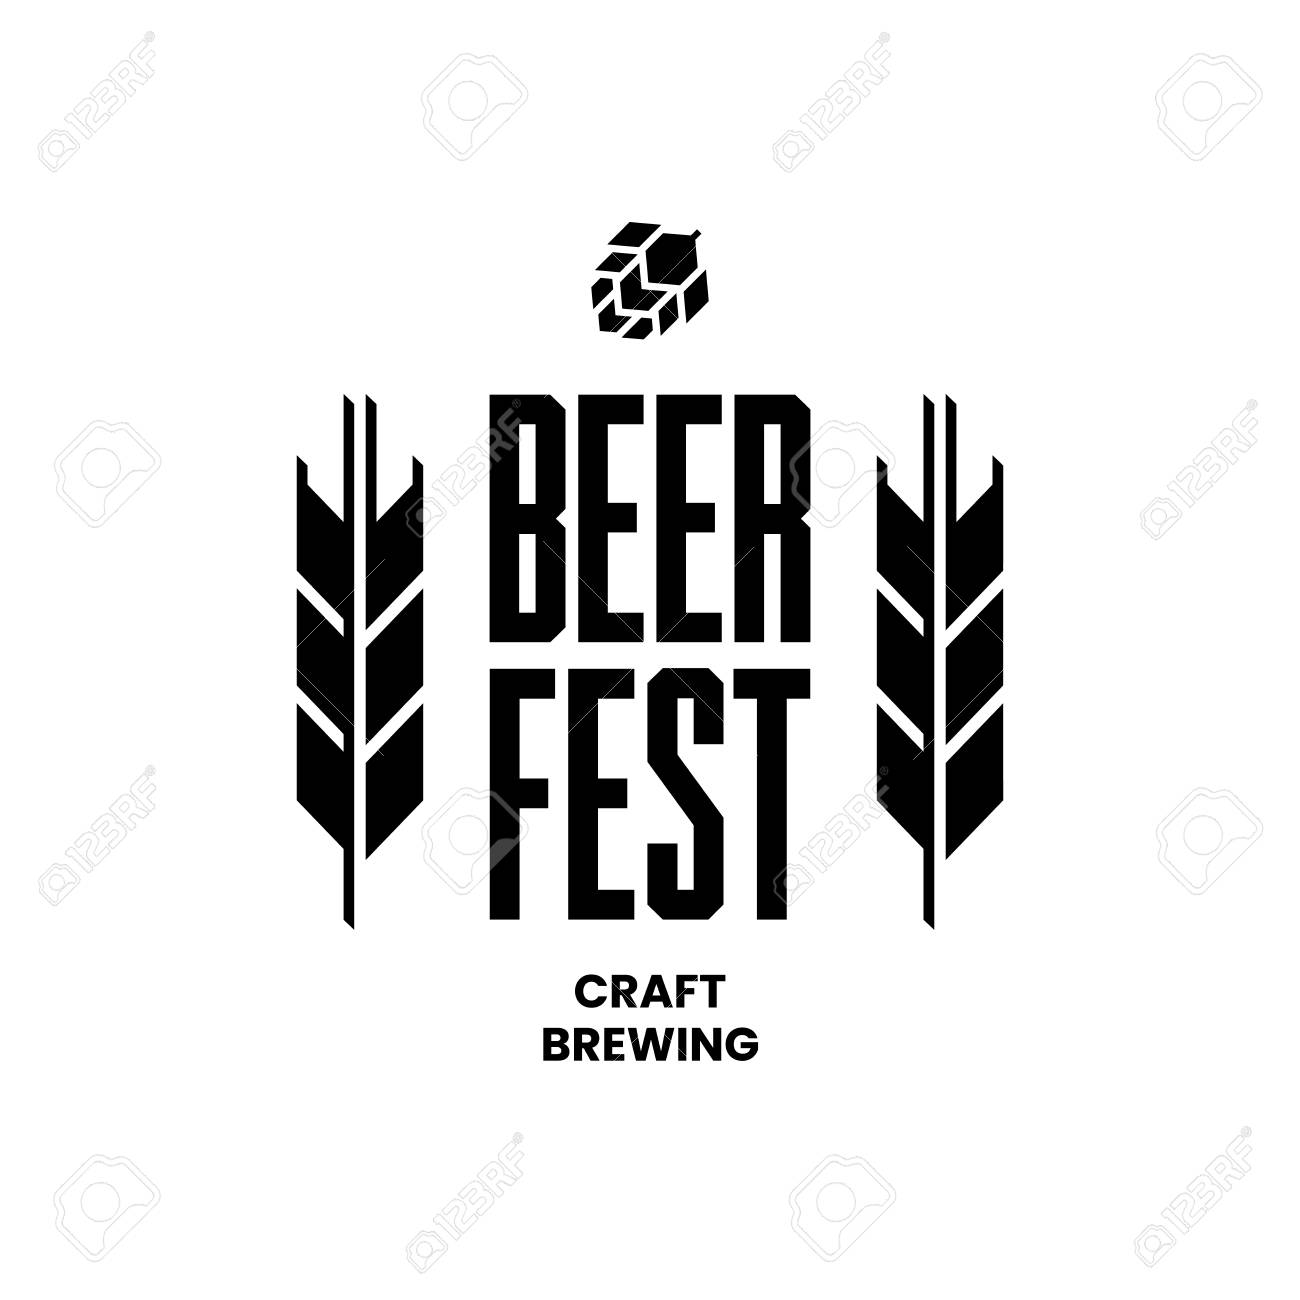 Modern craft beer drink vector logo sign for bar, pub, store, brewhouse or brewery isolated on white background. Premium quality emblem logotype illustration. Brewing fest fashion t-shirt badge design. - 120438757